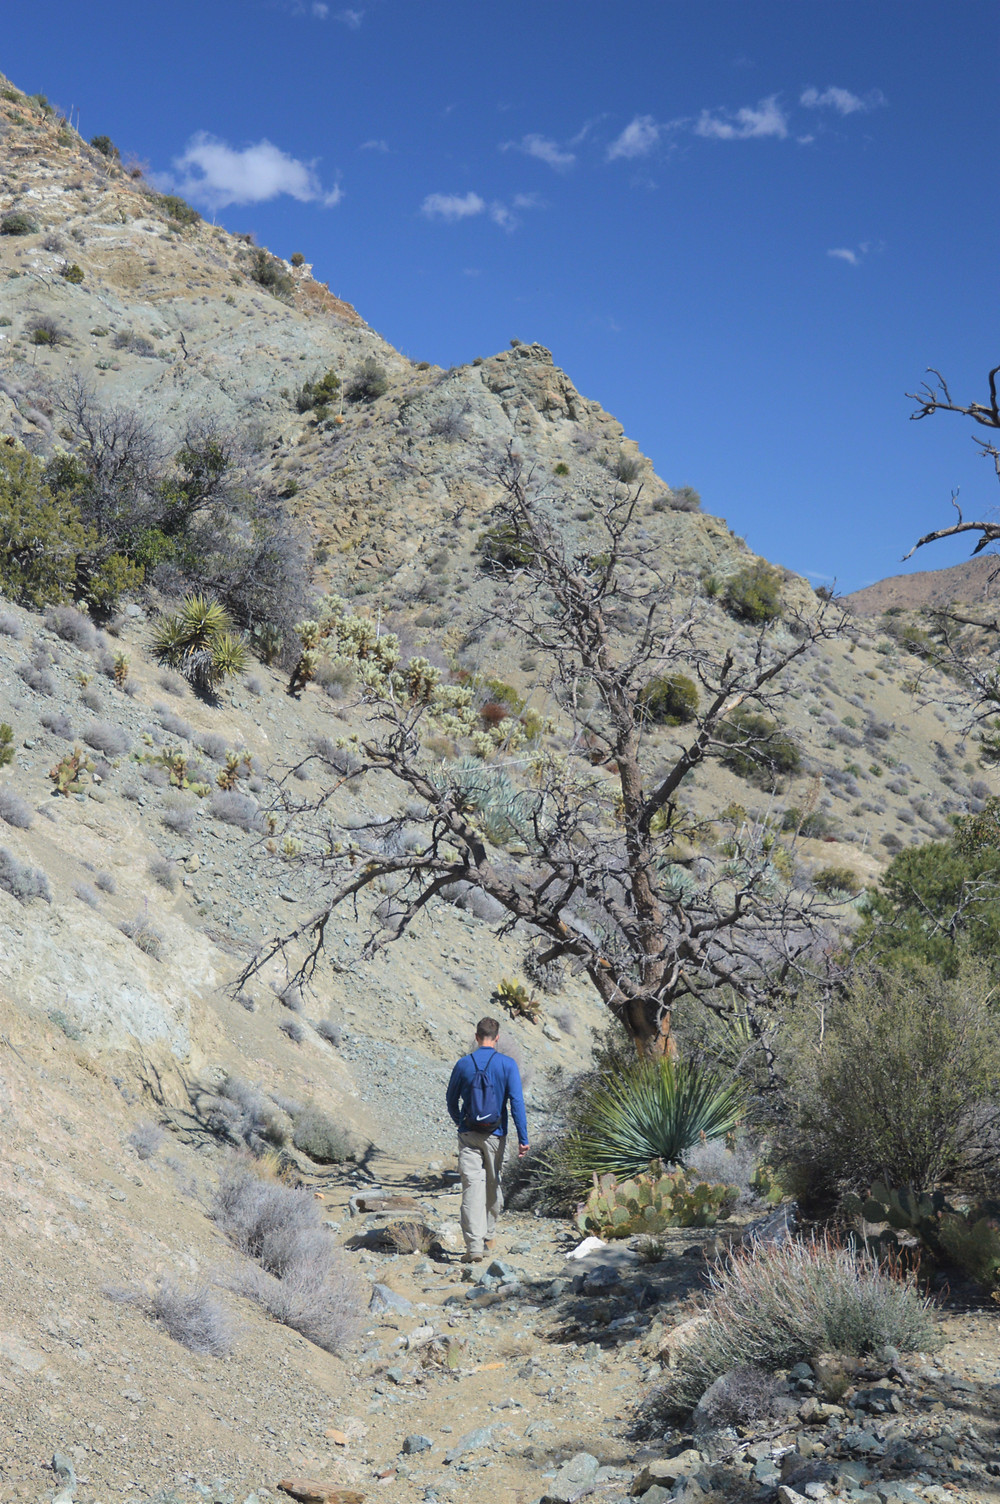 Hiking the Cactus Springs trail in the Santa Rosa Mountain Wilderness